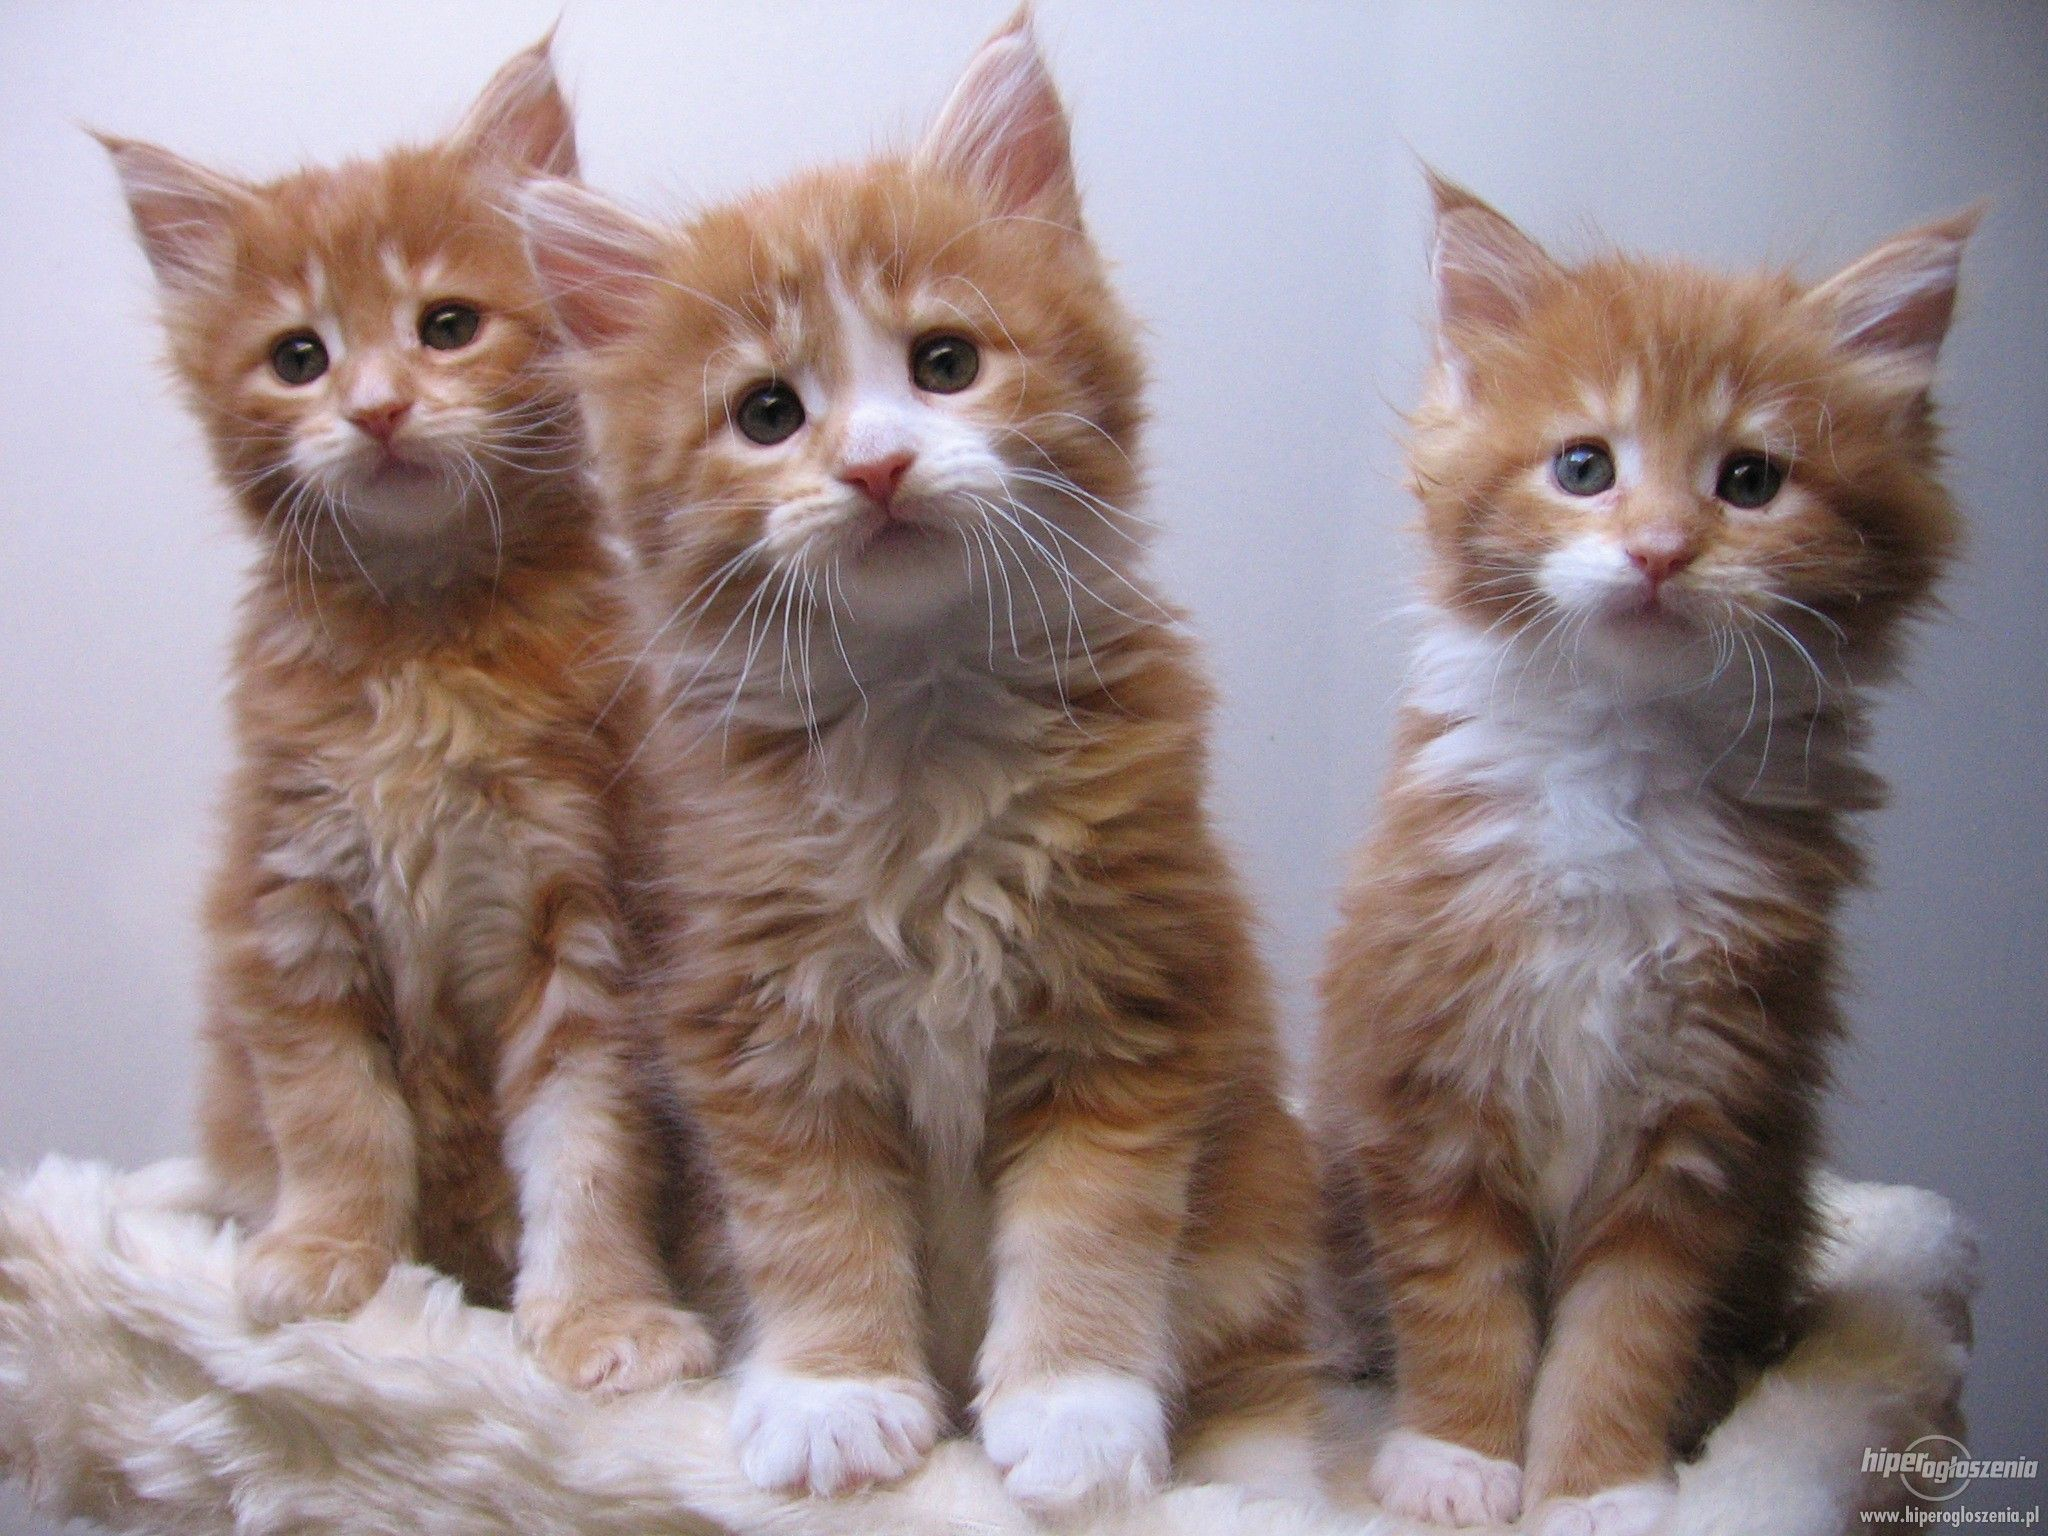 ce upon a time there were 3 kittens whose names were Mittens